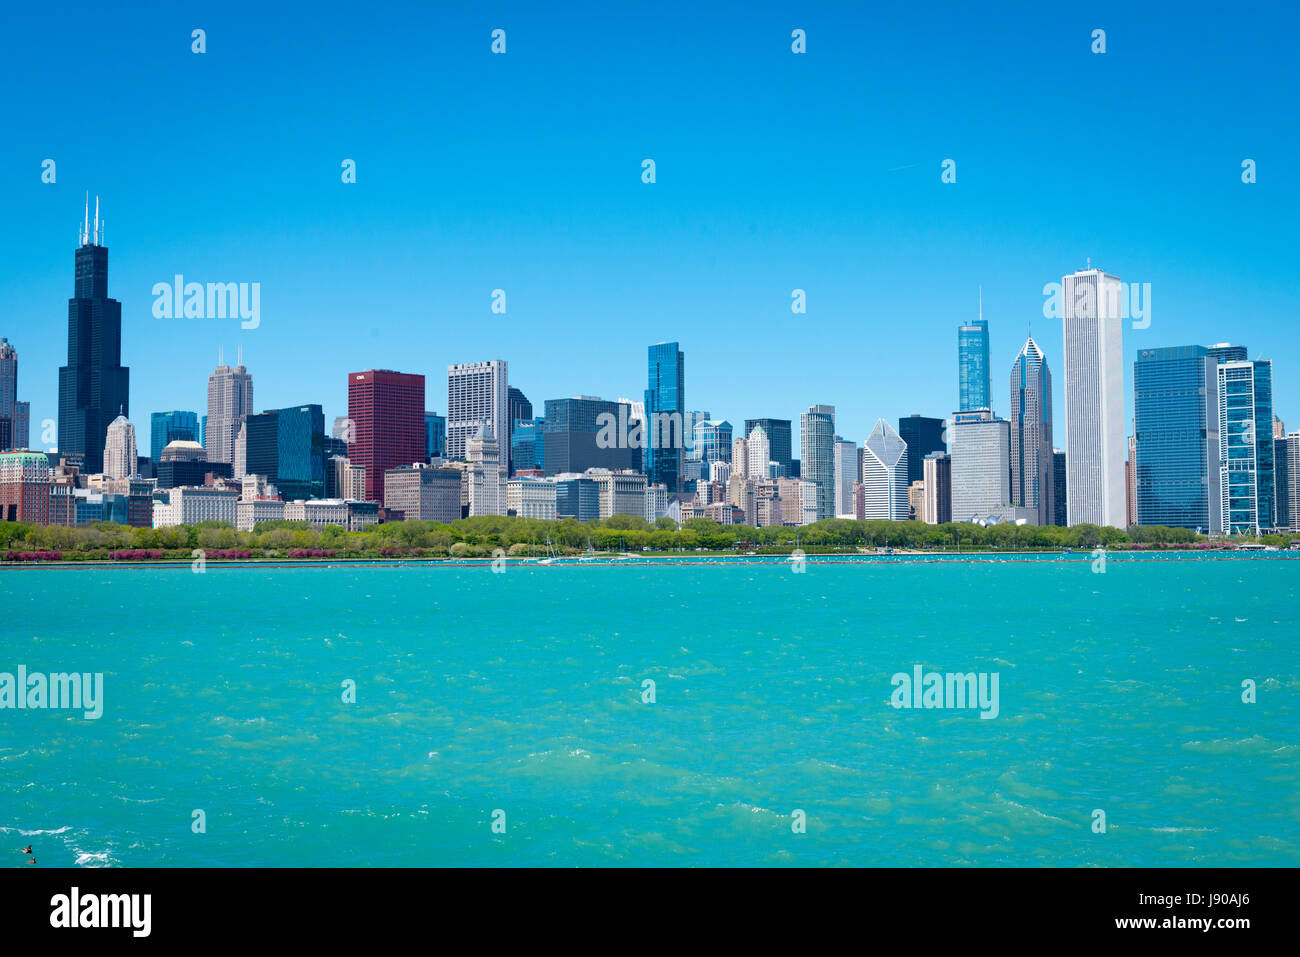 Chicago Illinois Near South Side East Solidarity Drive view panorama cityscape skyscrapers high-rise buildings Lake - Stock Image